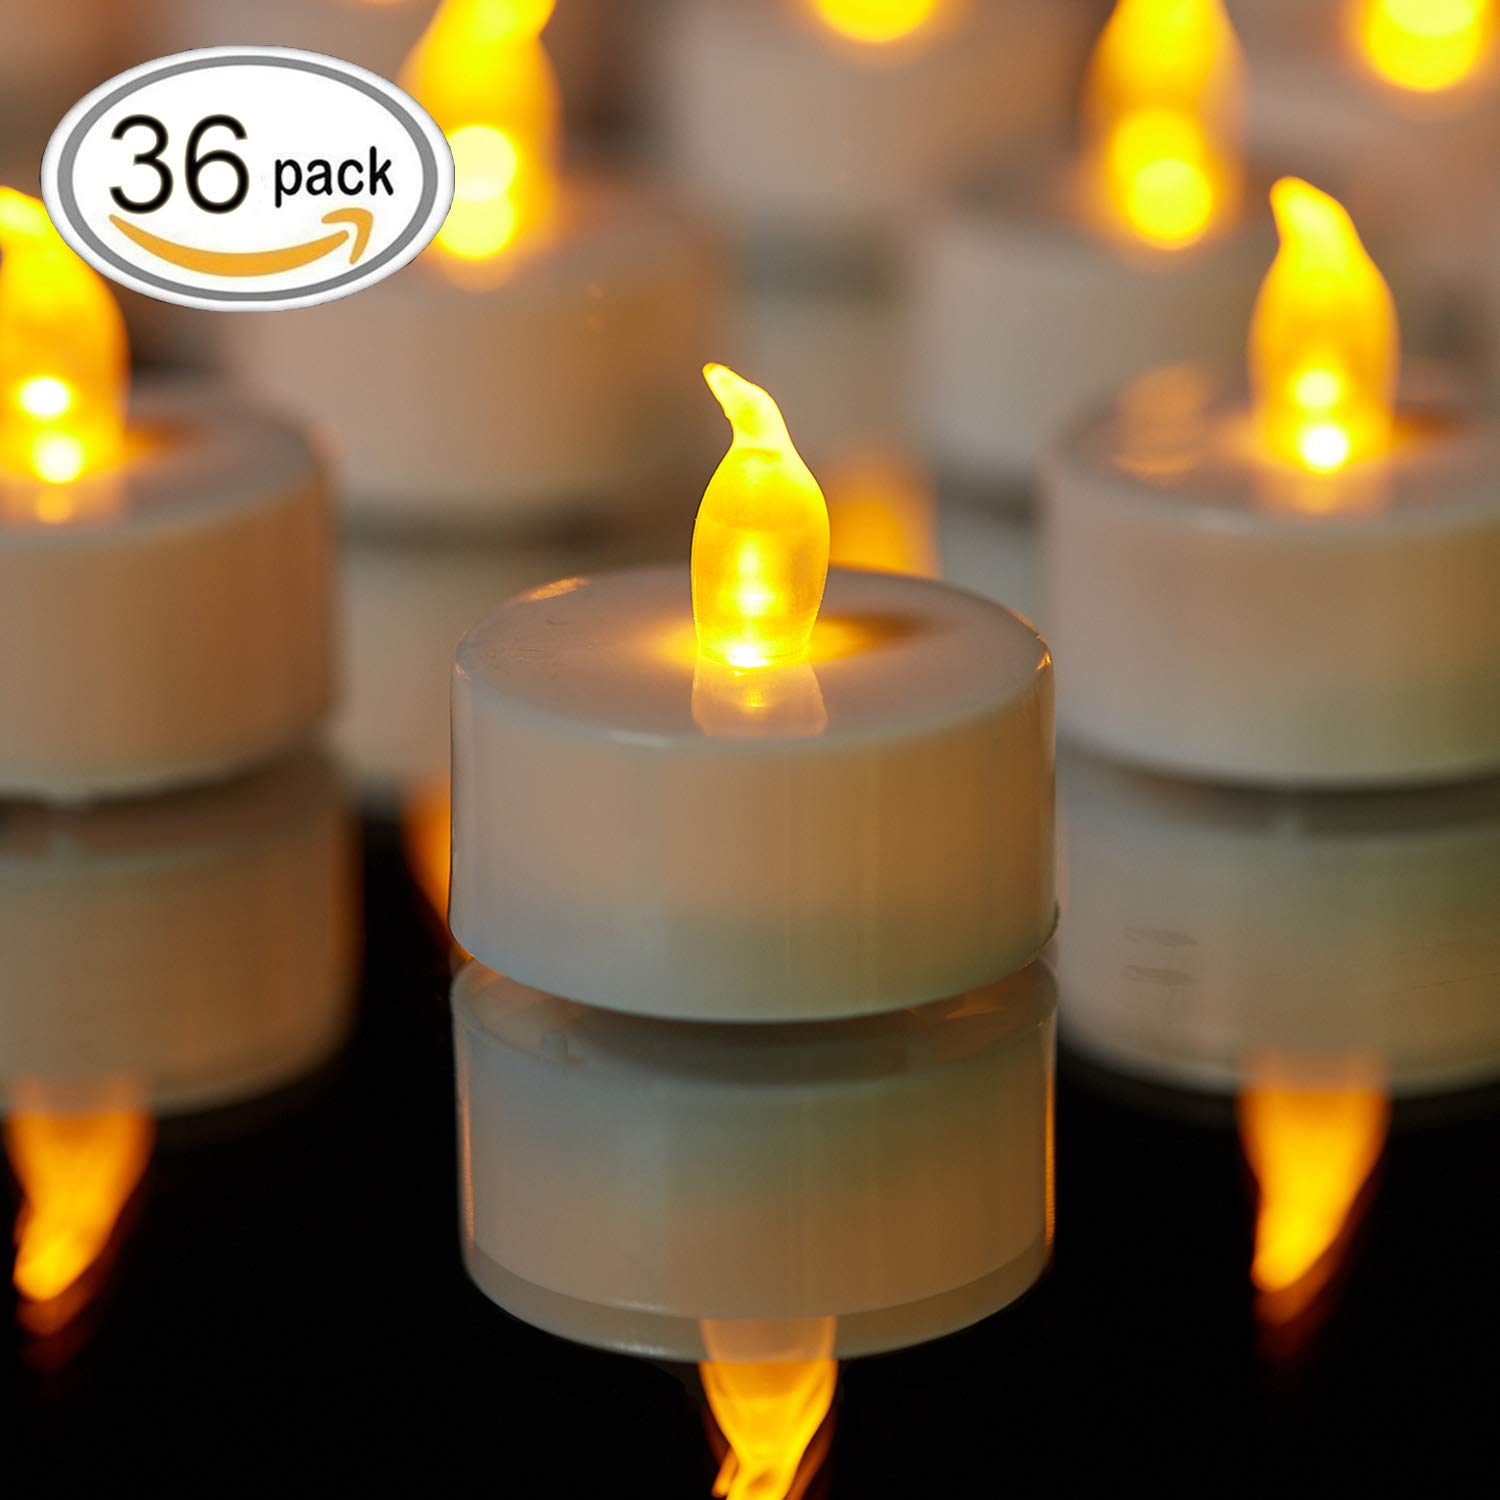 TEECOO Summer Promotion:Tea lights, Flickering LED Tea Light Candles Flameless candles LED candles Φ3.4 x H3.6 36-pack Battery powered 100+ Hours(Warm Yellow,36-pack)